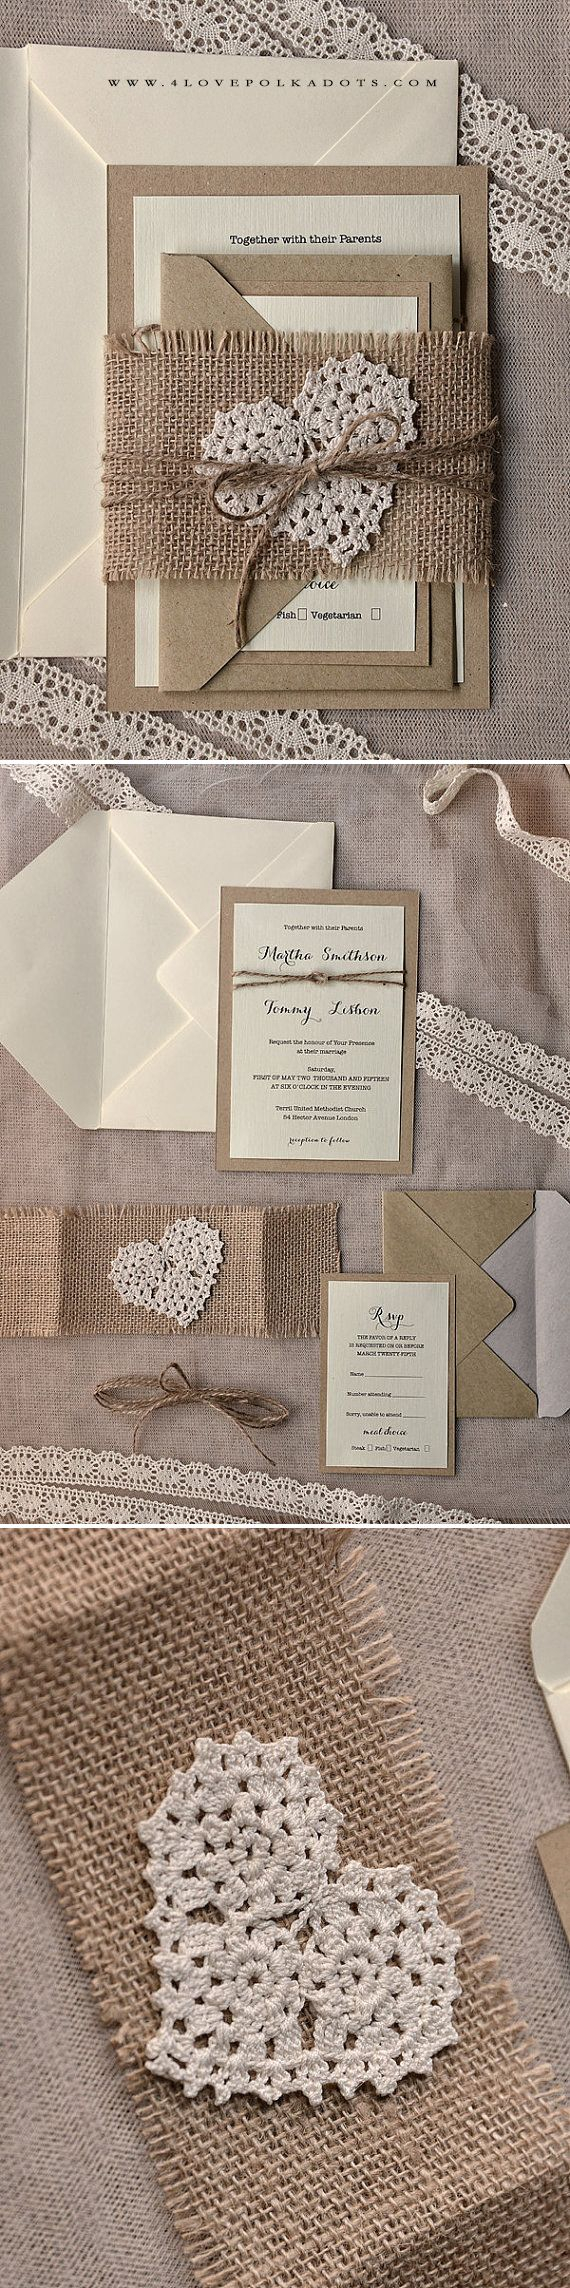 Rustic Chic Wedding Invitations Diy Wedding Invitation Interesting Rustic Wedding Invitations For